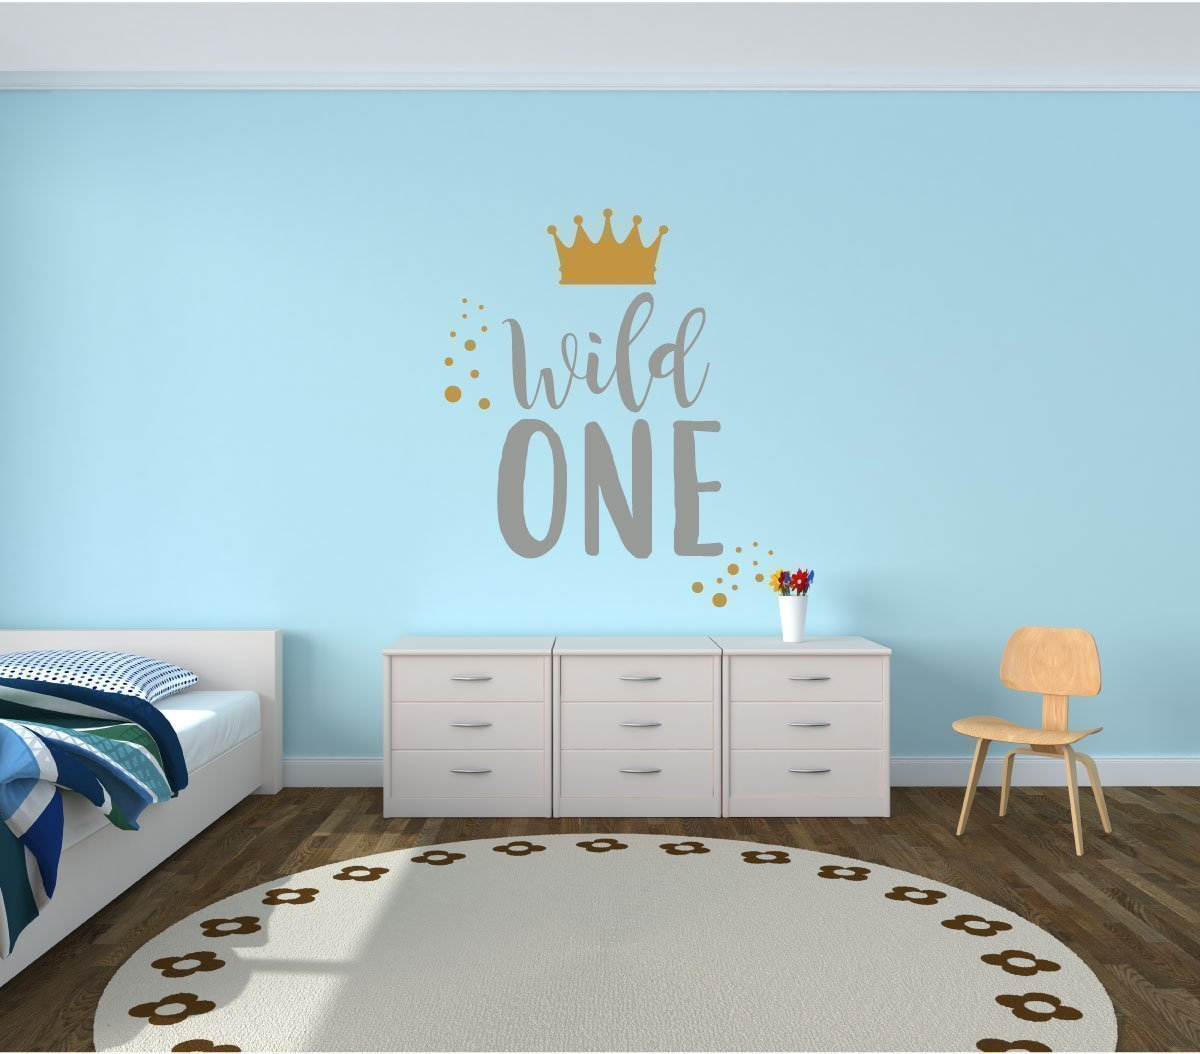 Wall Decal for Kids - Wild One - Where The Wild Things Are Theme Room - Crown Design - Vinyl Wall Art and Decor for Children's Bedroom